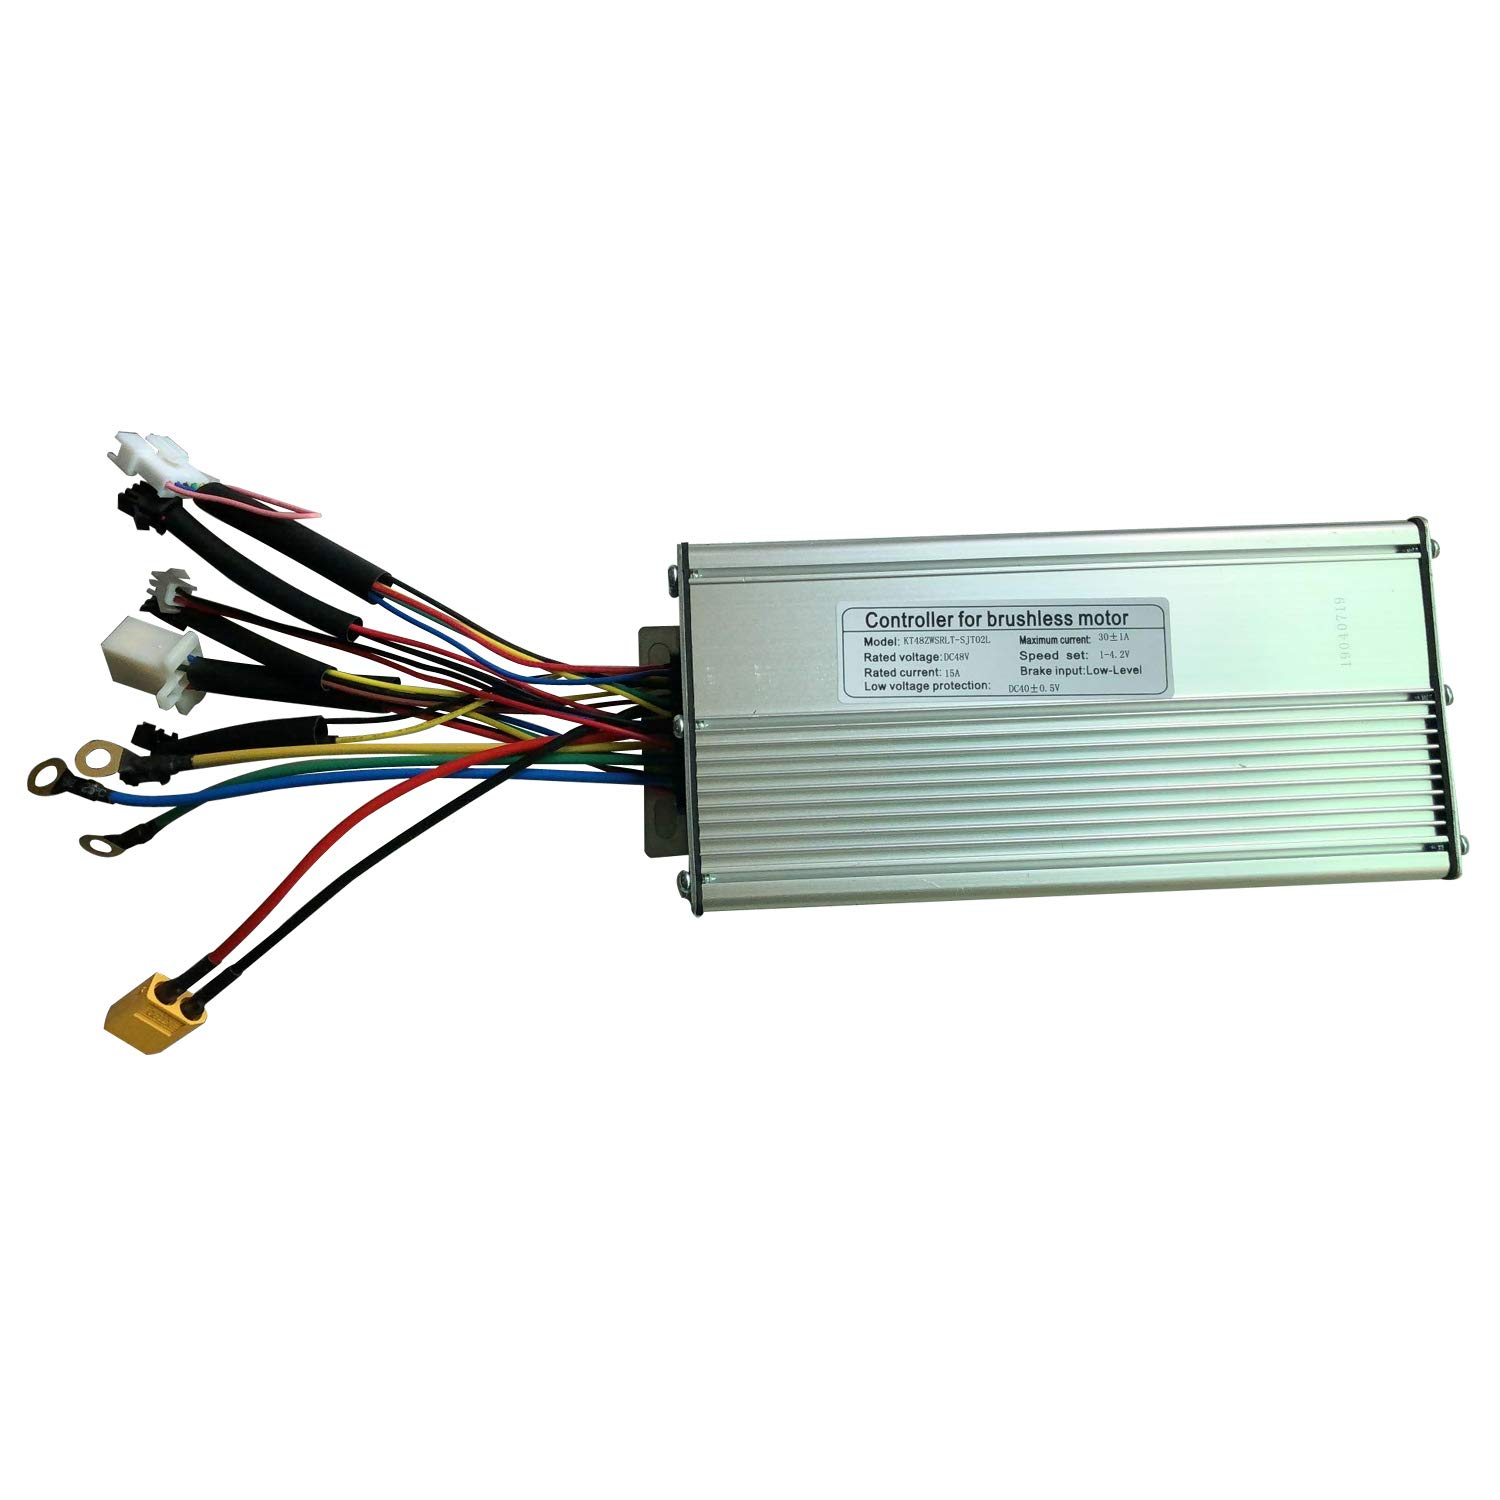 12 Mosfet Dual Mode LOLTRA EBike Controller Sine Wave Dual Mode KT Controller for 36V 48V Electric Bicycle DC Hub Motor and KT Display